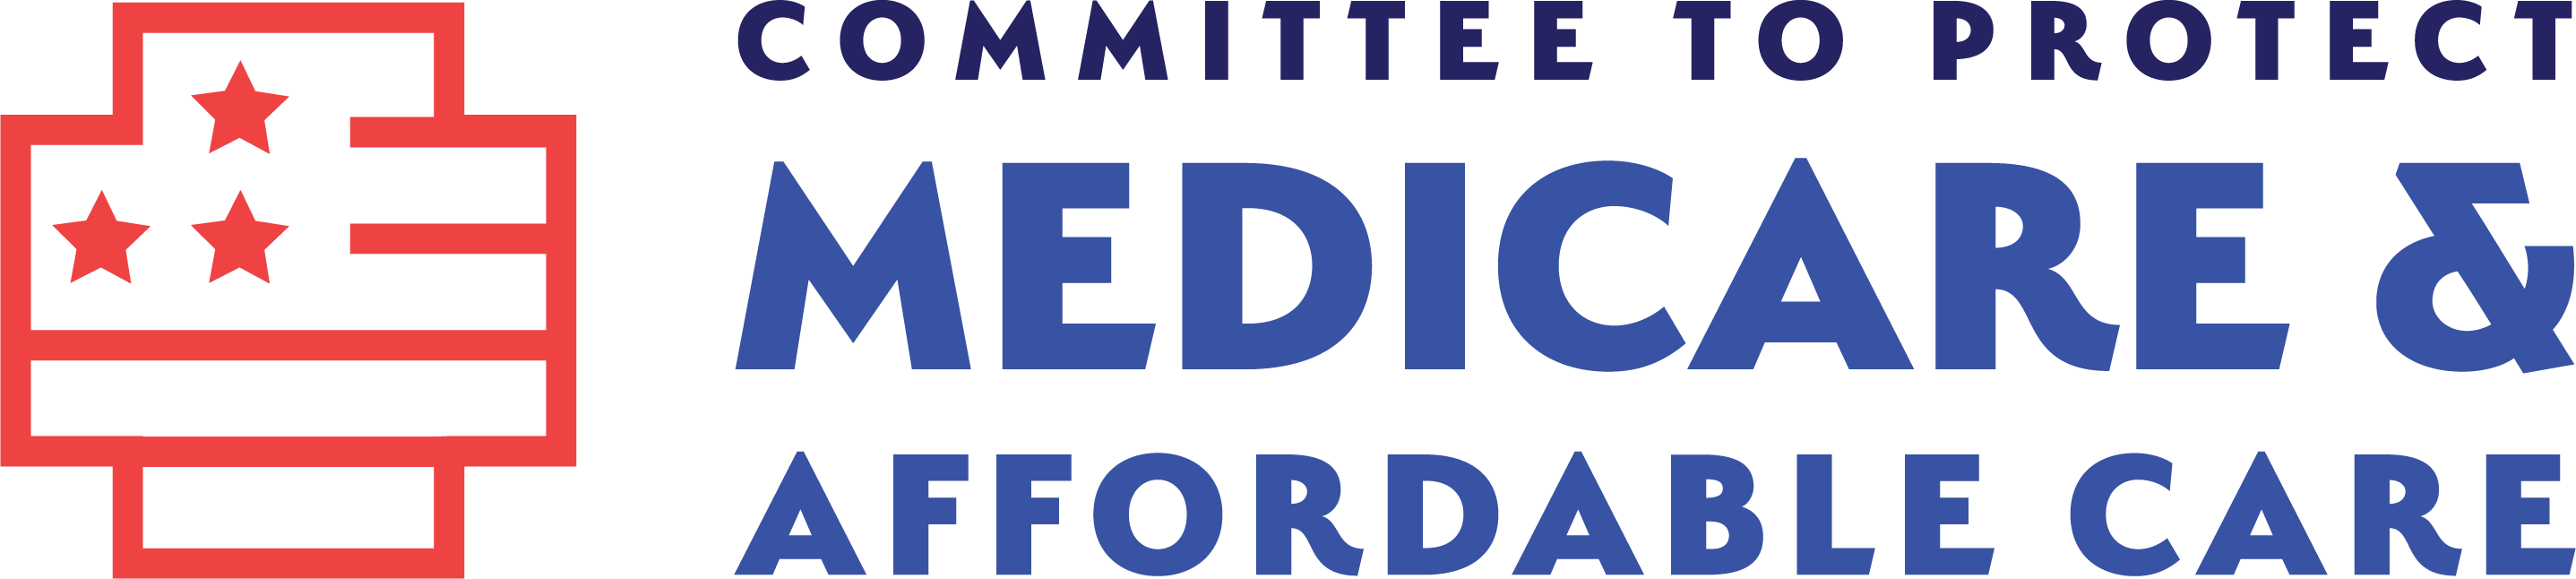 The Committee to Protect Medicare and Affordable Care